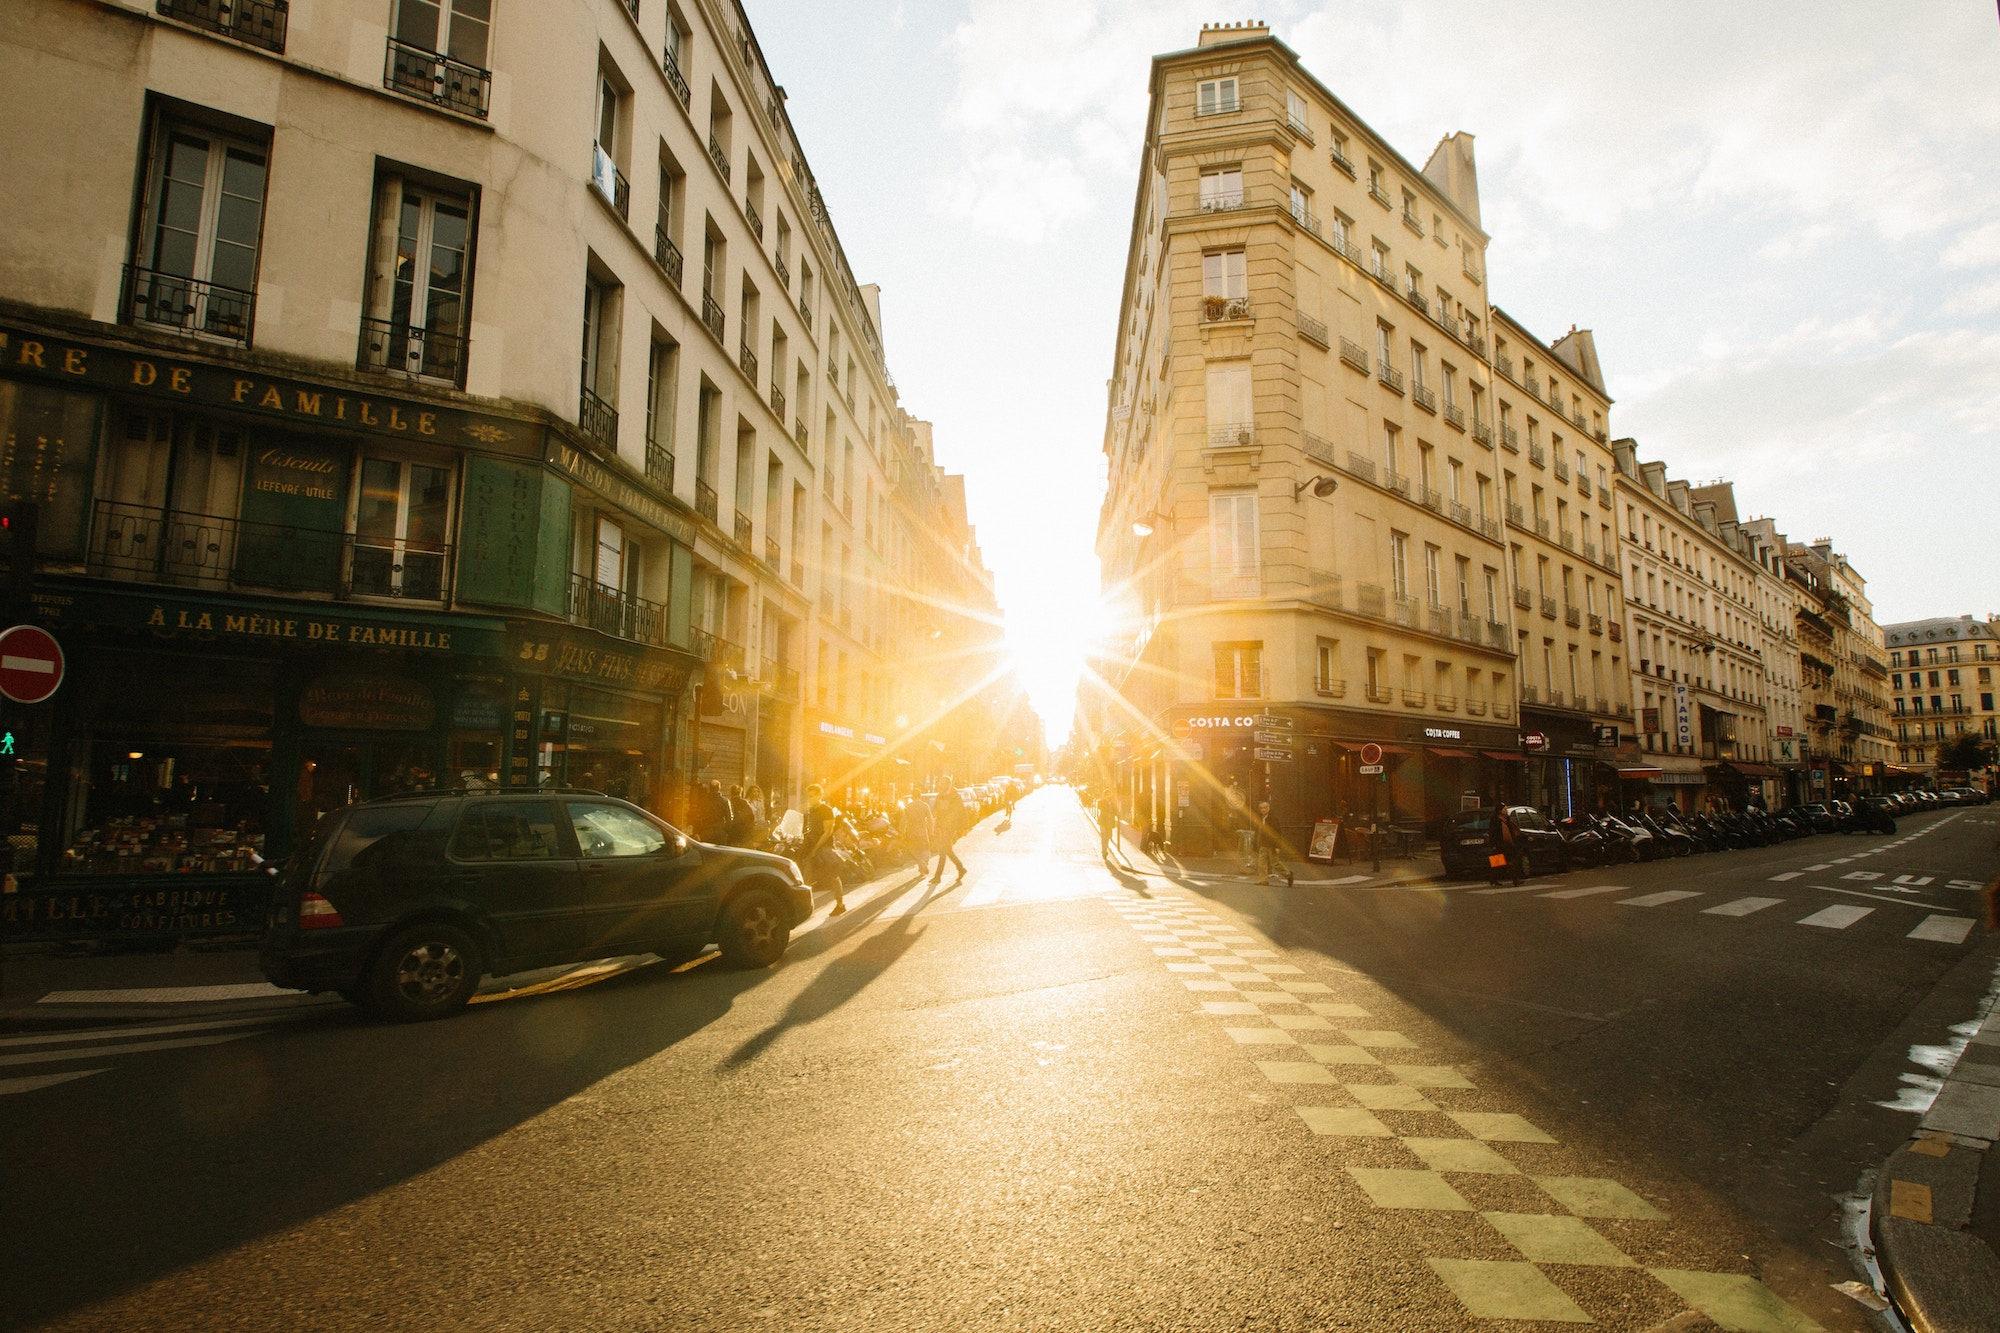 We've asked journalist, podcaster, and Paris dweller Oliver Gee to share his advice on how to pull of the perfect first trip to Paris.